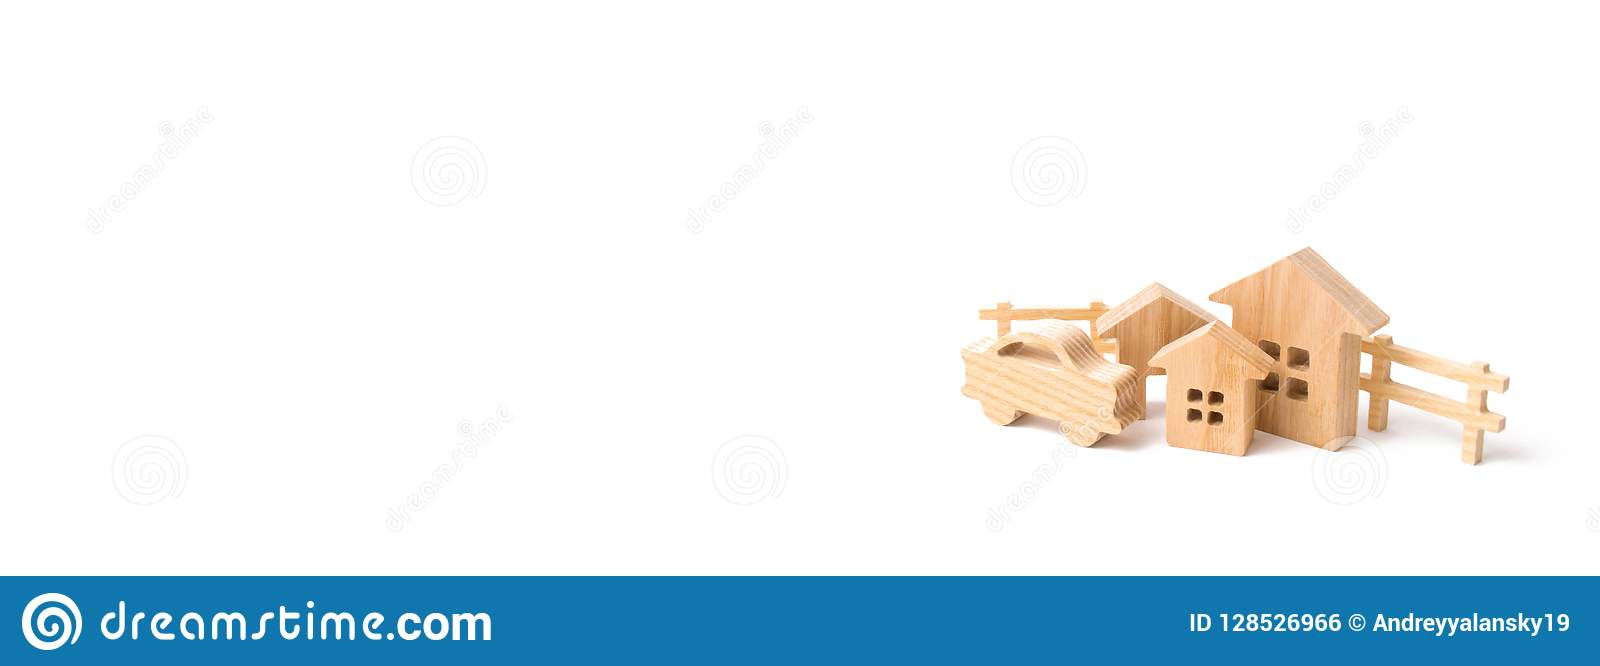 wooden houses and car on a white background the concept of